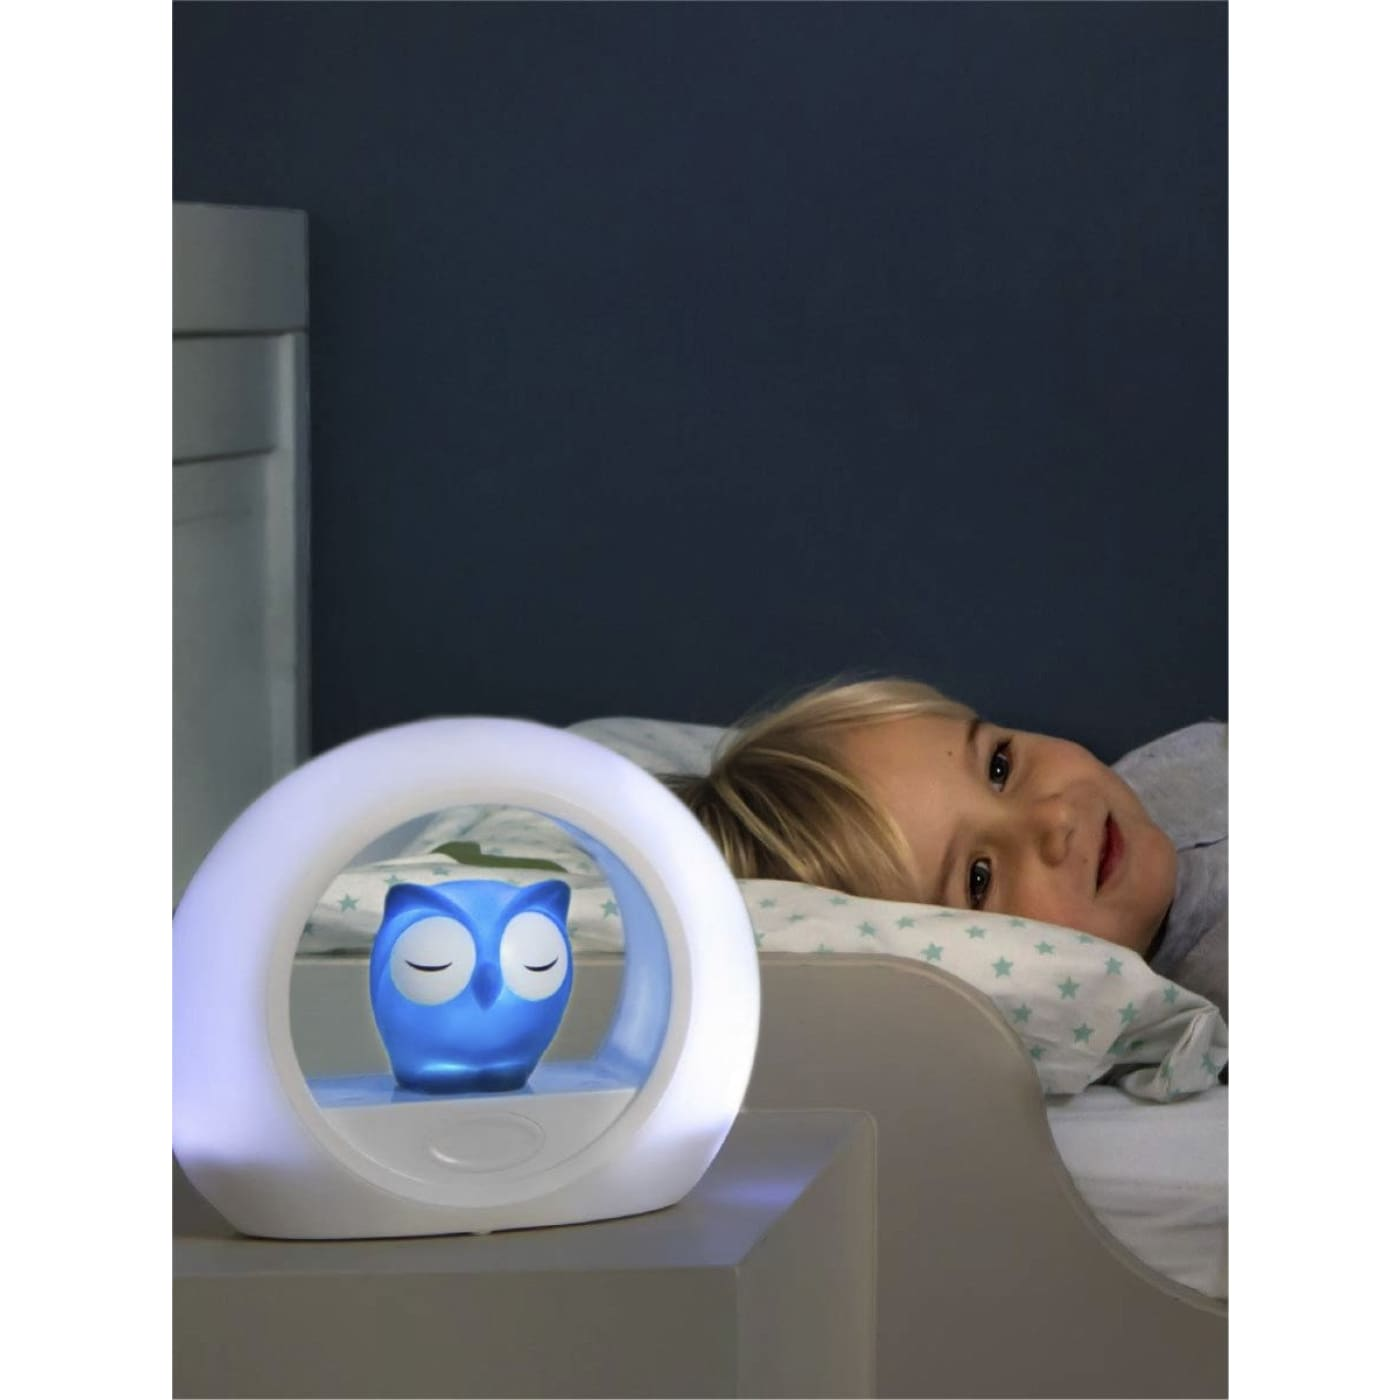 ZAZU Nightlight LOU - Blue - Blue - NURSERY & BEDTIME - SLEEP AIDS/NIGHT LIGHTS